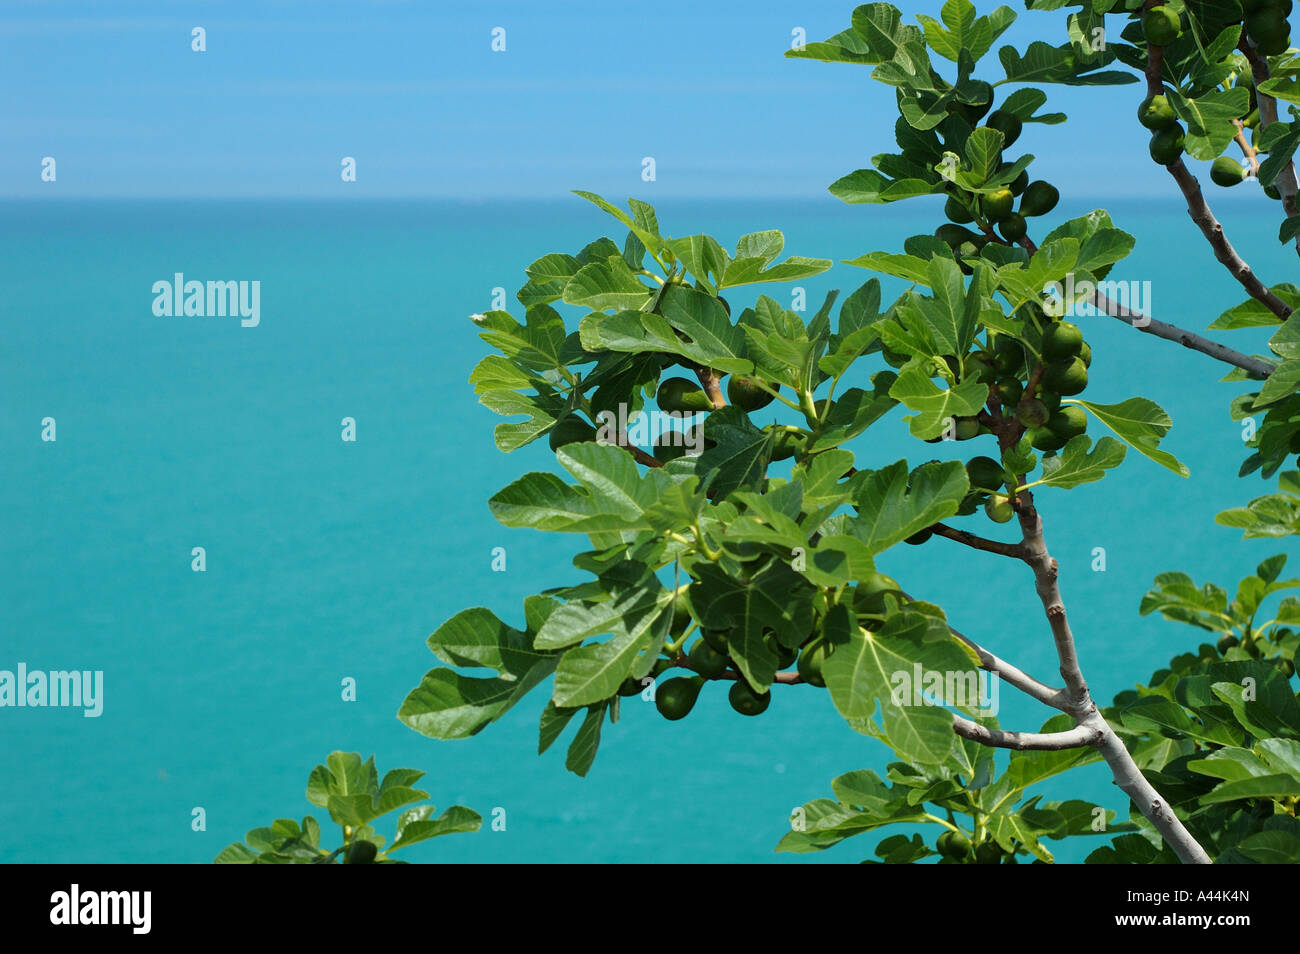 Unripe figs growing on the shore of Mediterranean Sea - Italy. - Stock Image